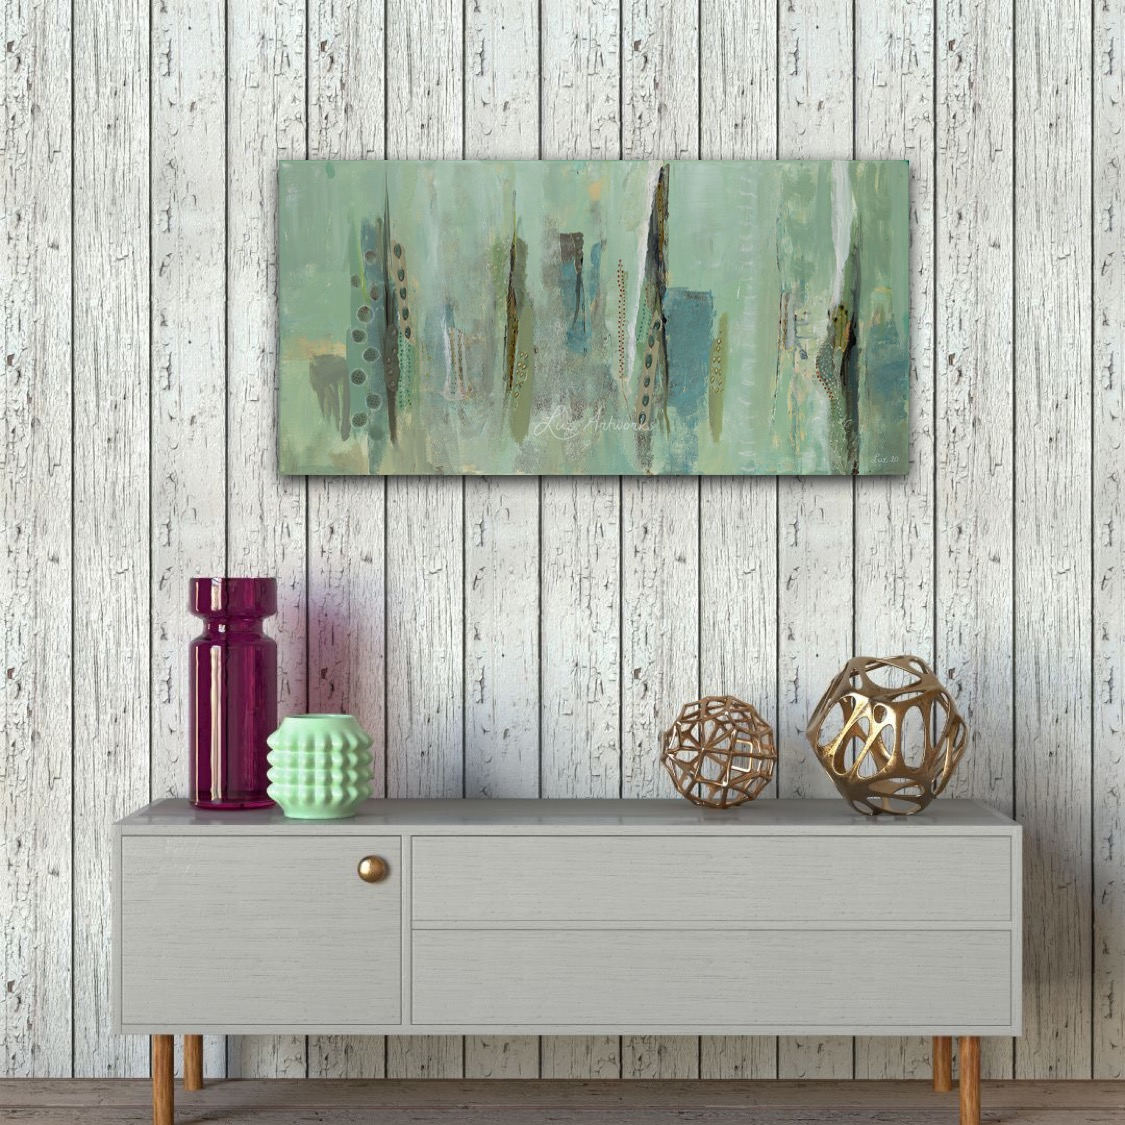 Painting Serenity by Marloes Bloedjes - on the wall